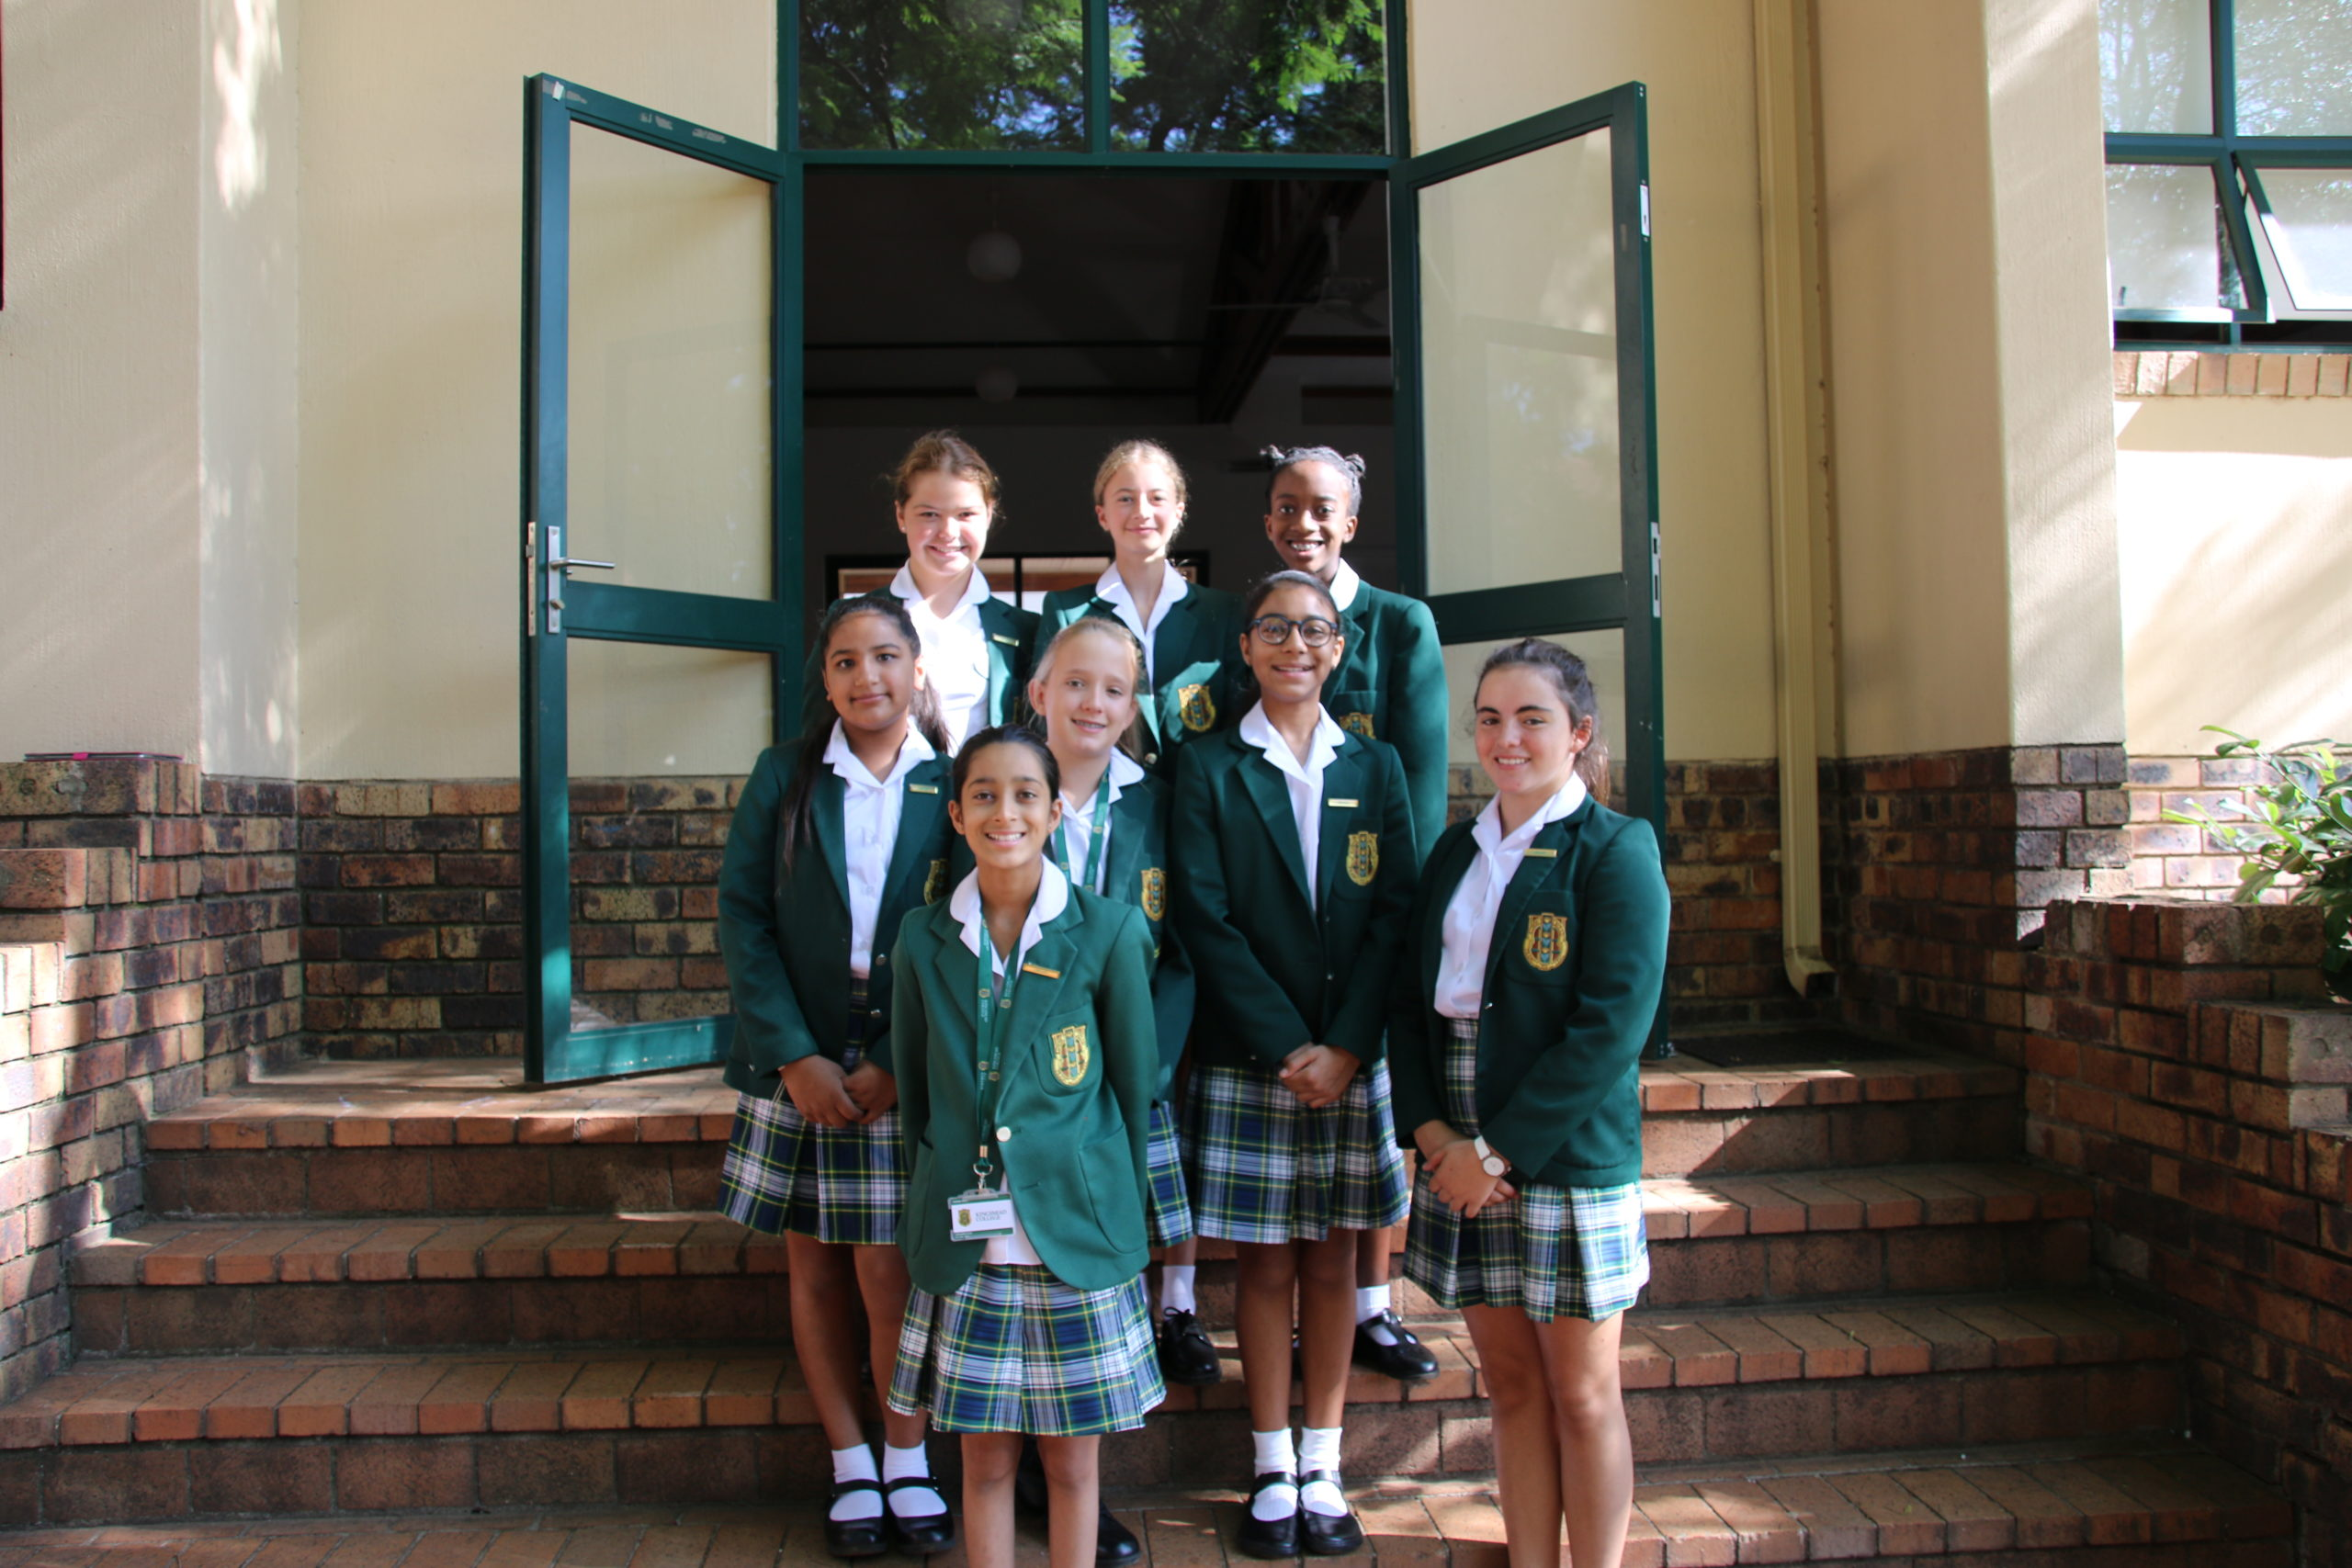 LIBRARY COMMITTEE scaled Kingsmead College